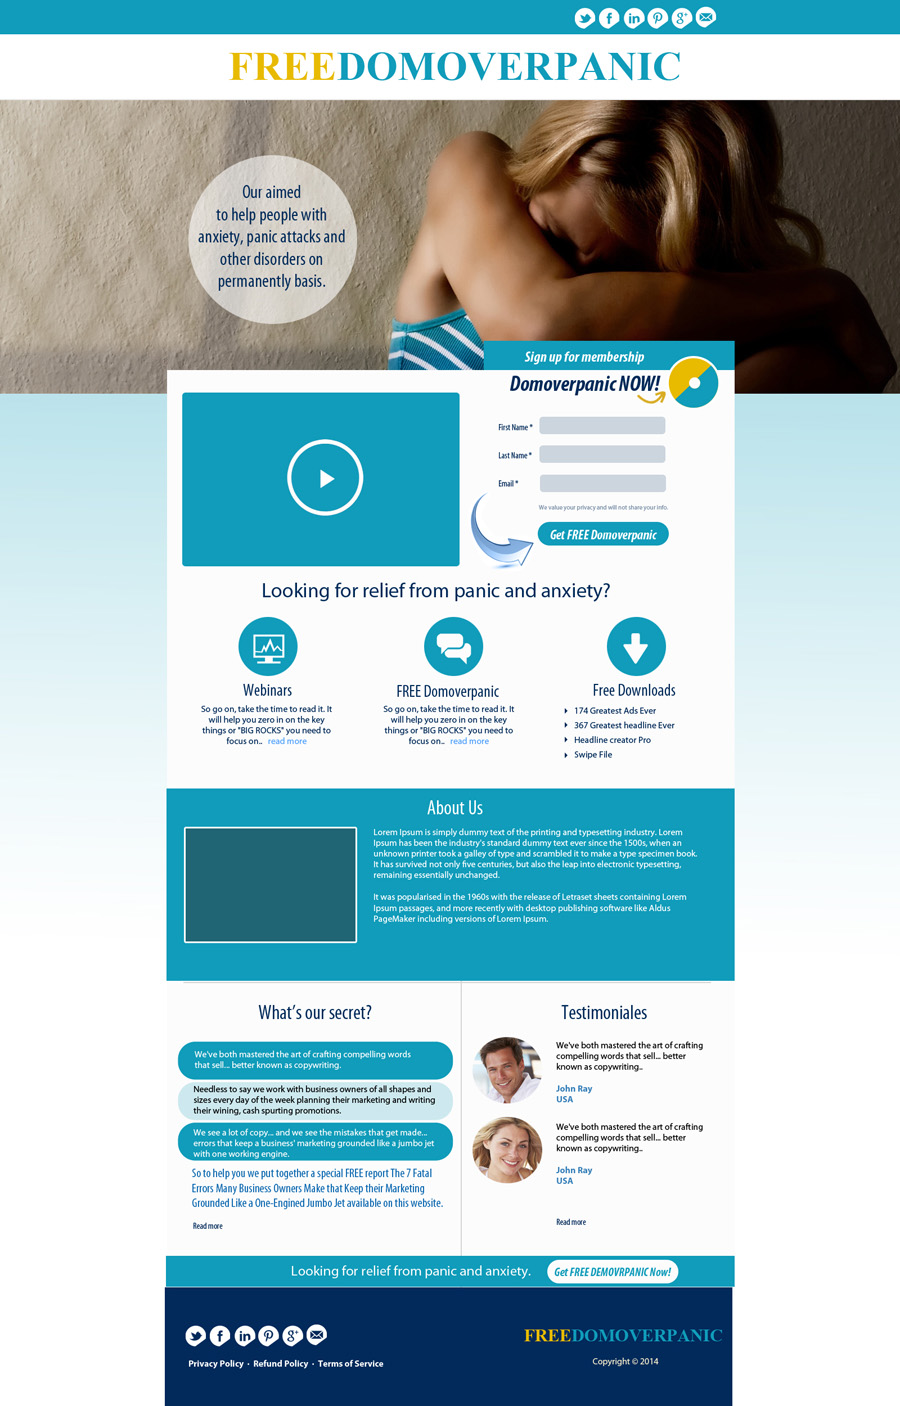 Product Web Design for Meta Training OU by uk | Design #4628123